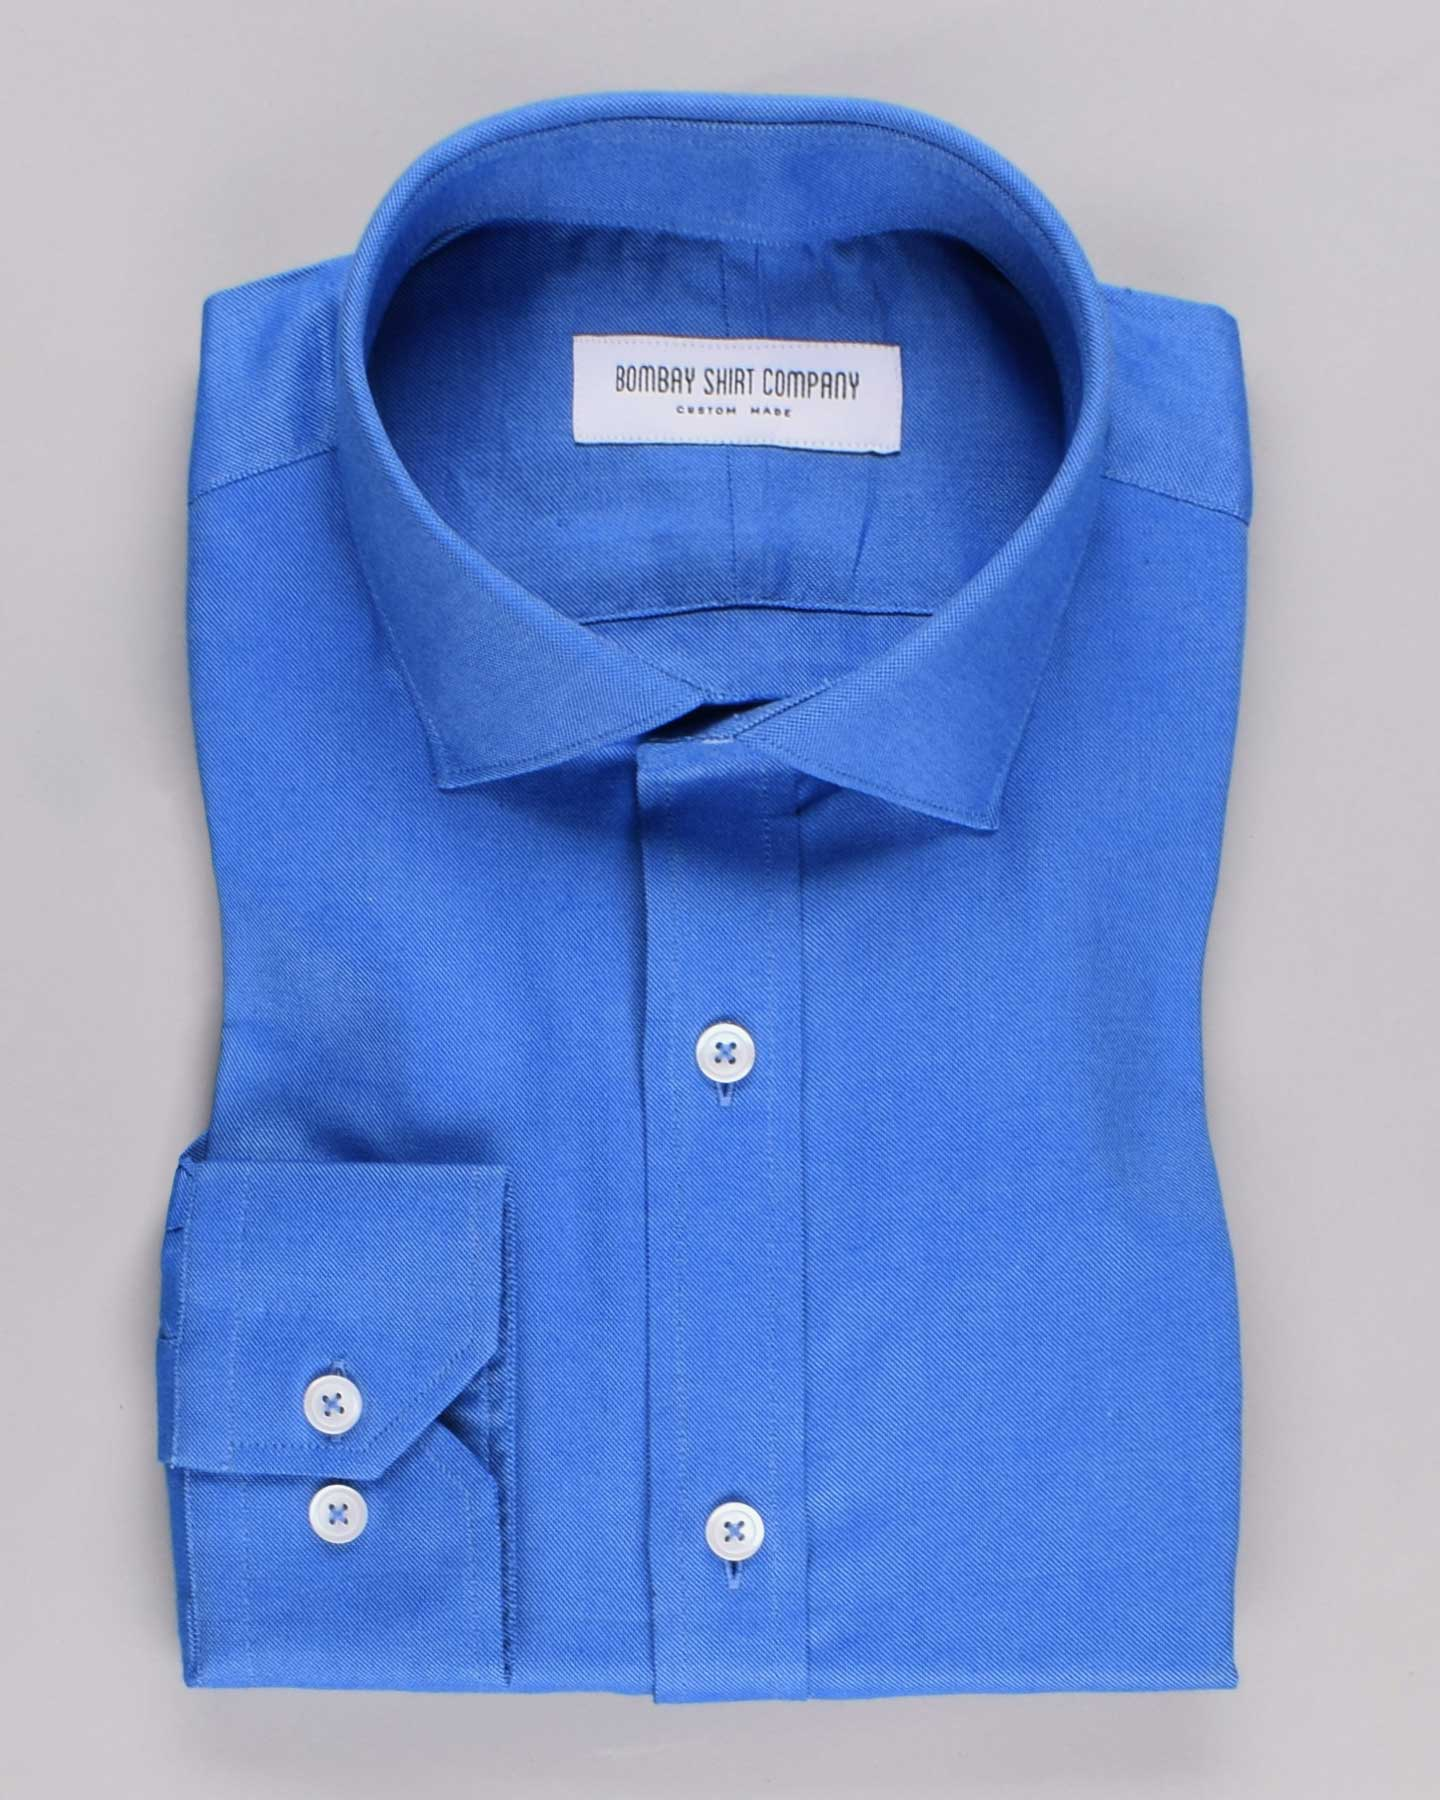 Vibrant Blue Oxford Shirt